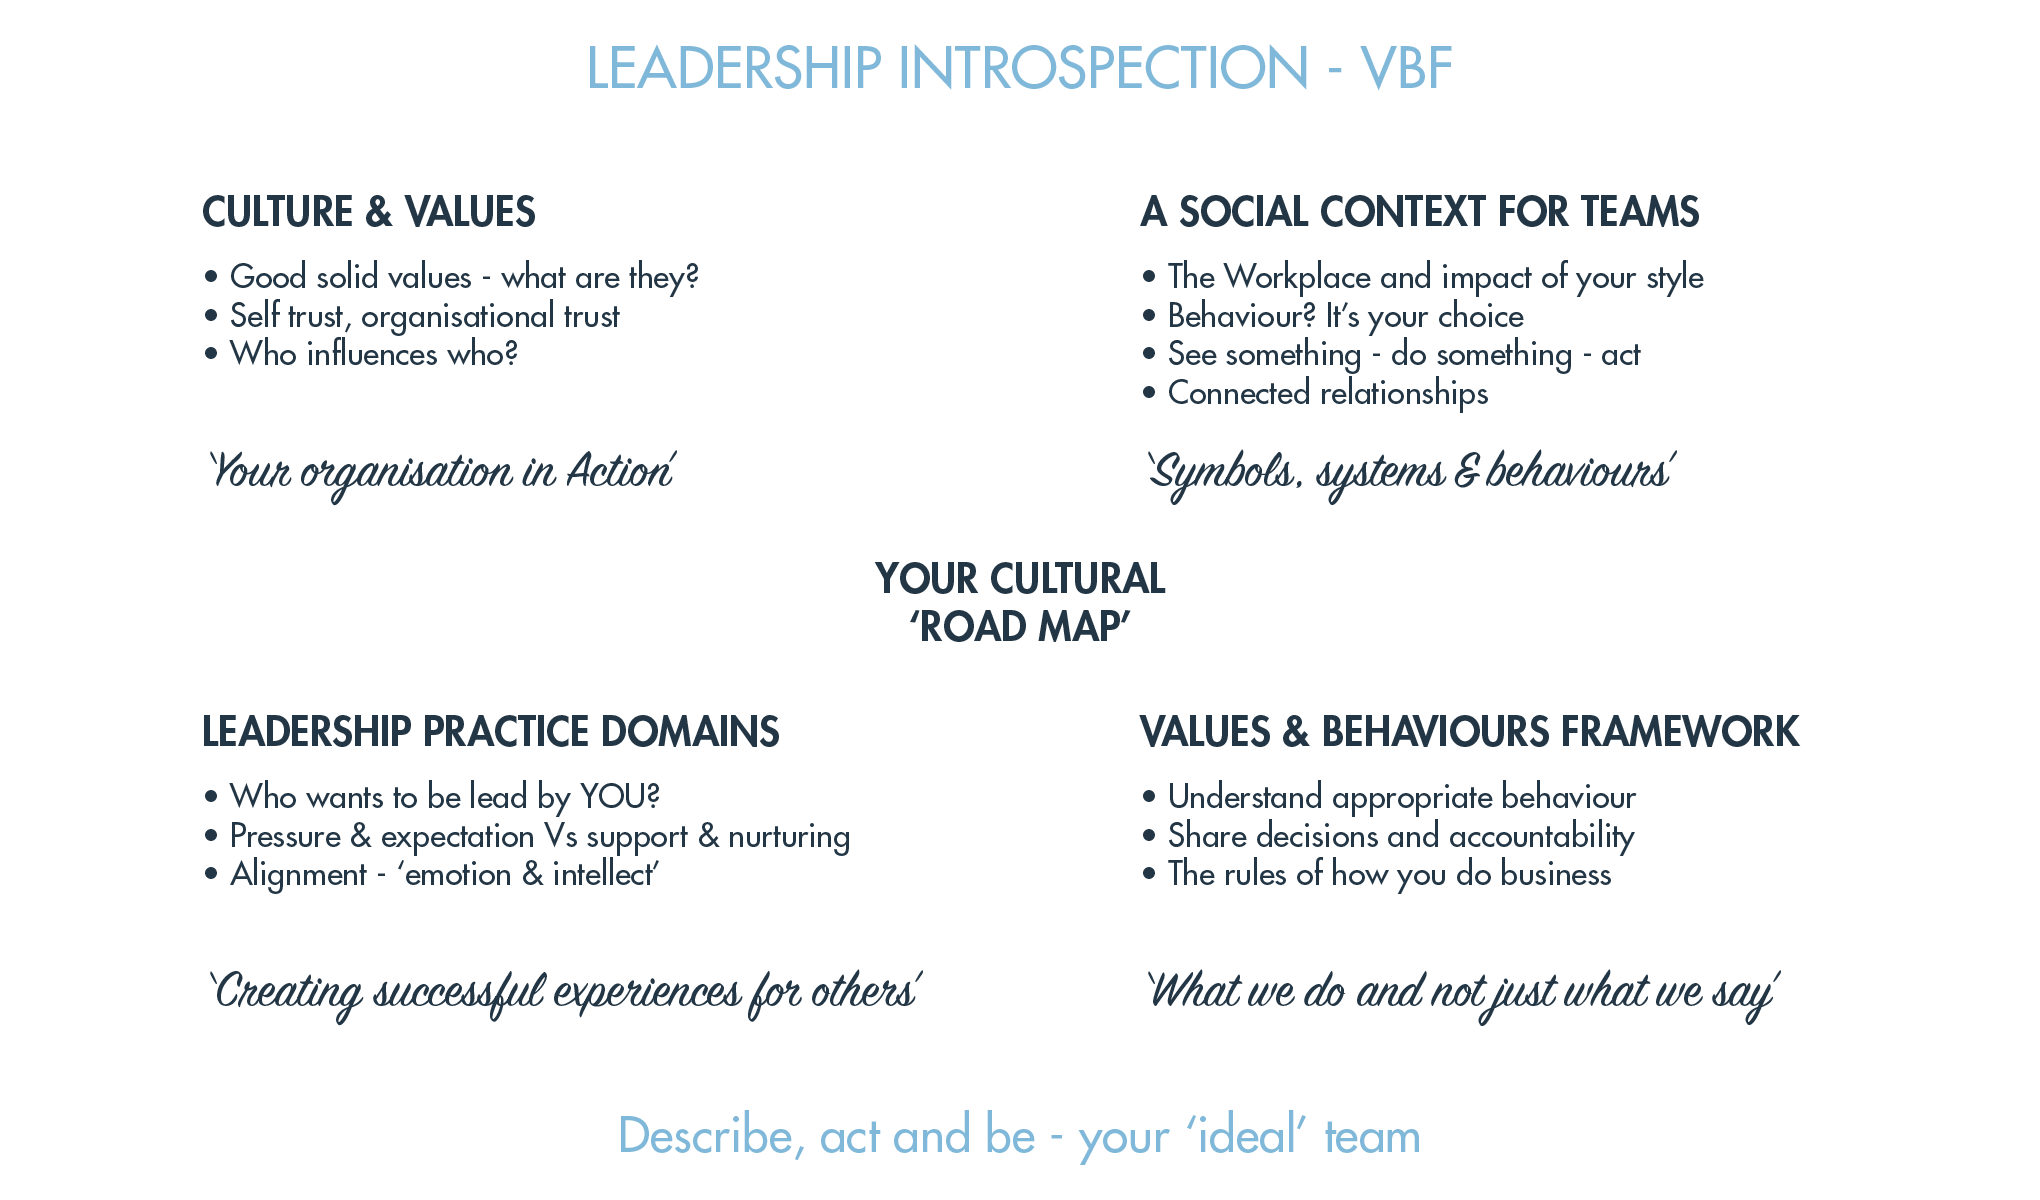 Leadership-Introspection@2x.png